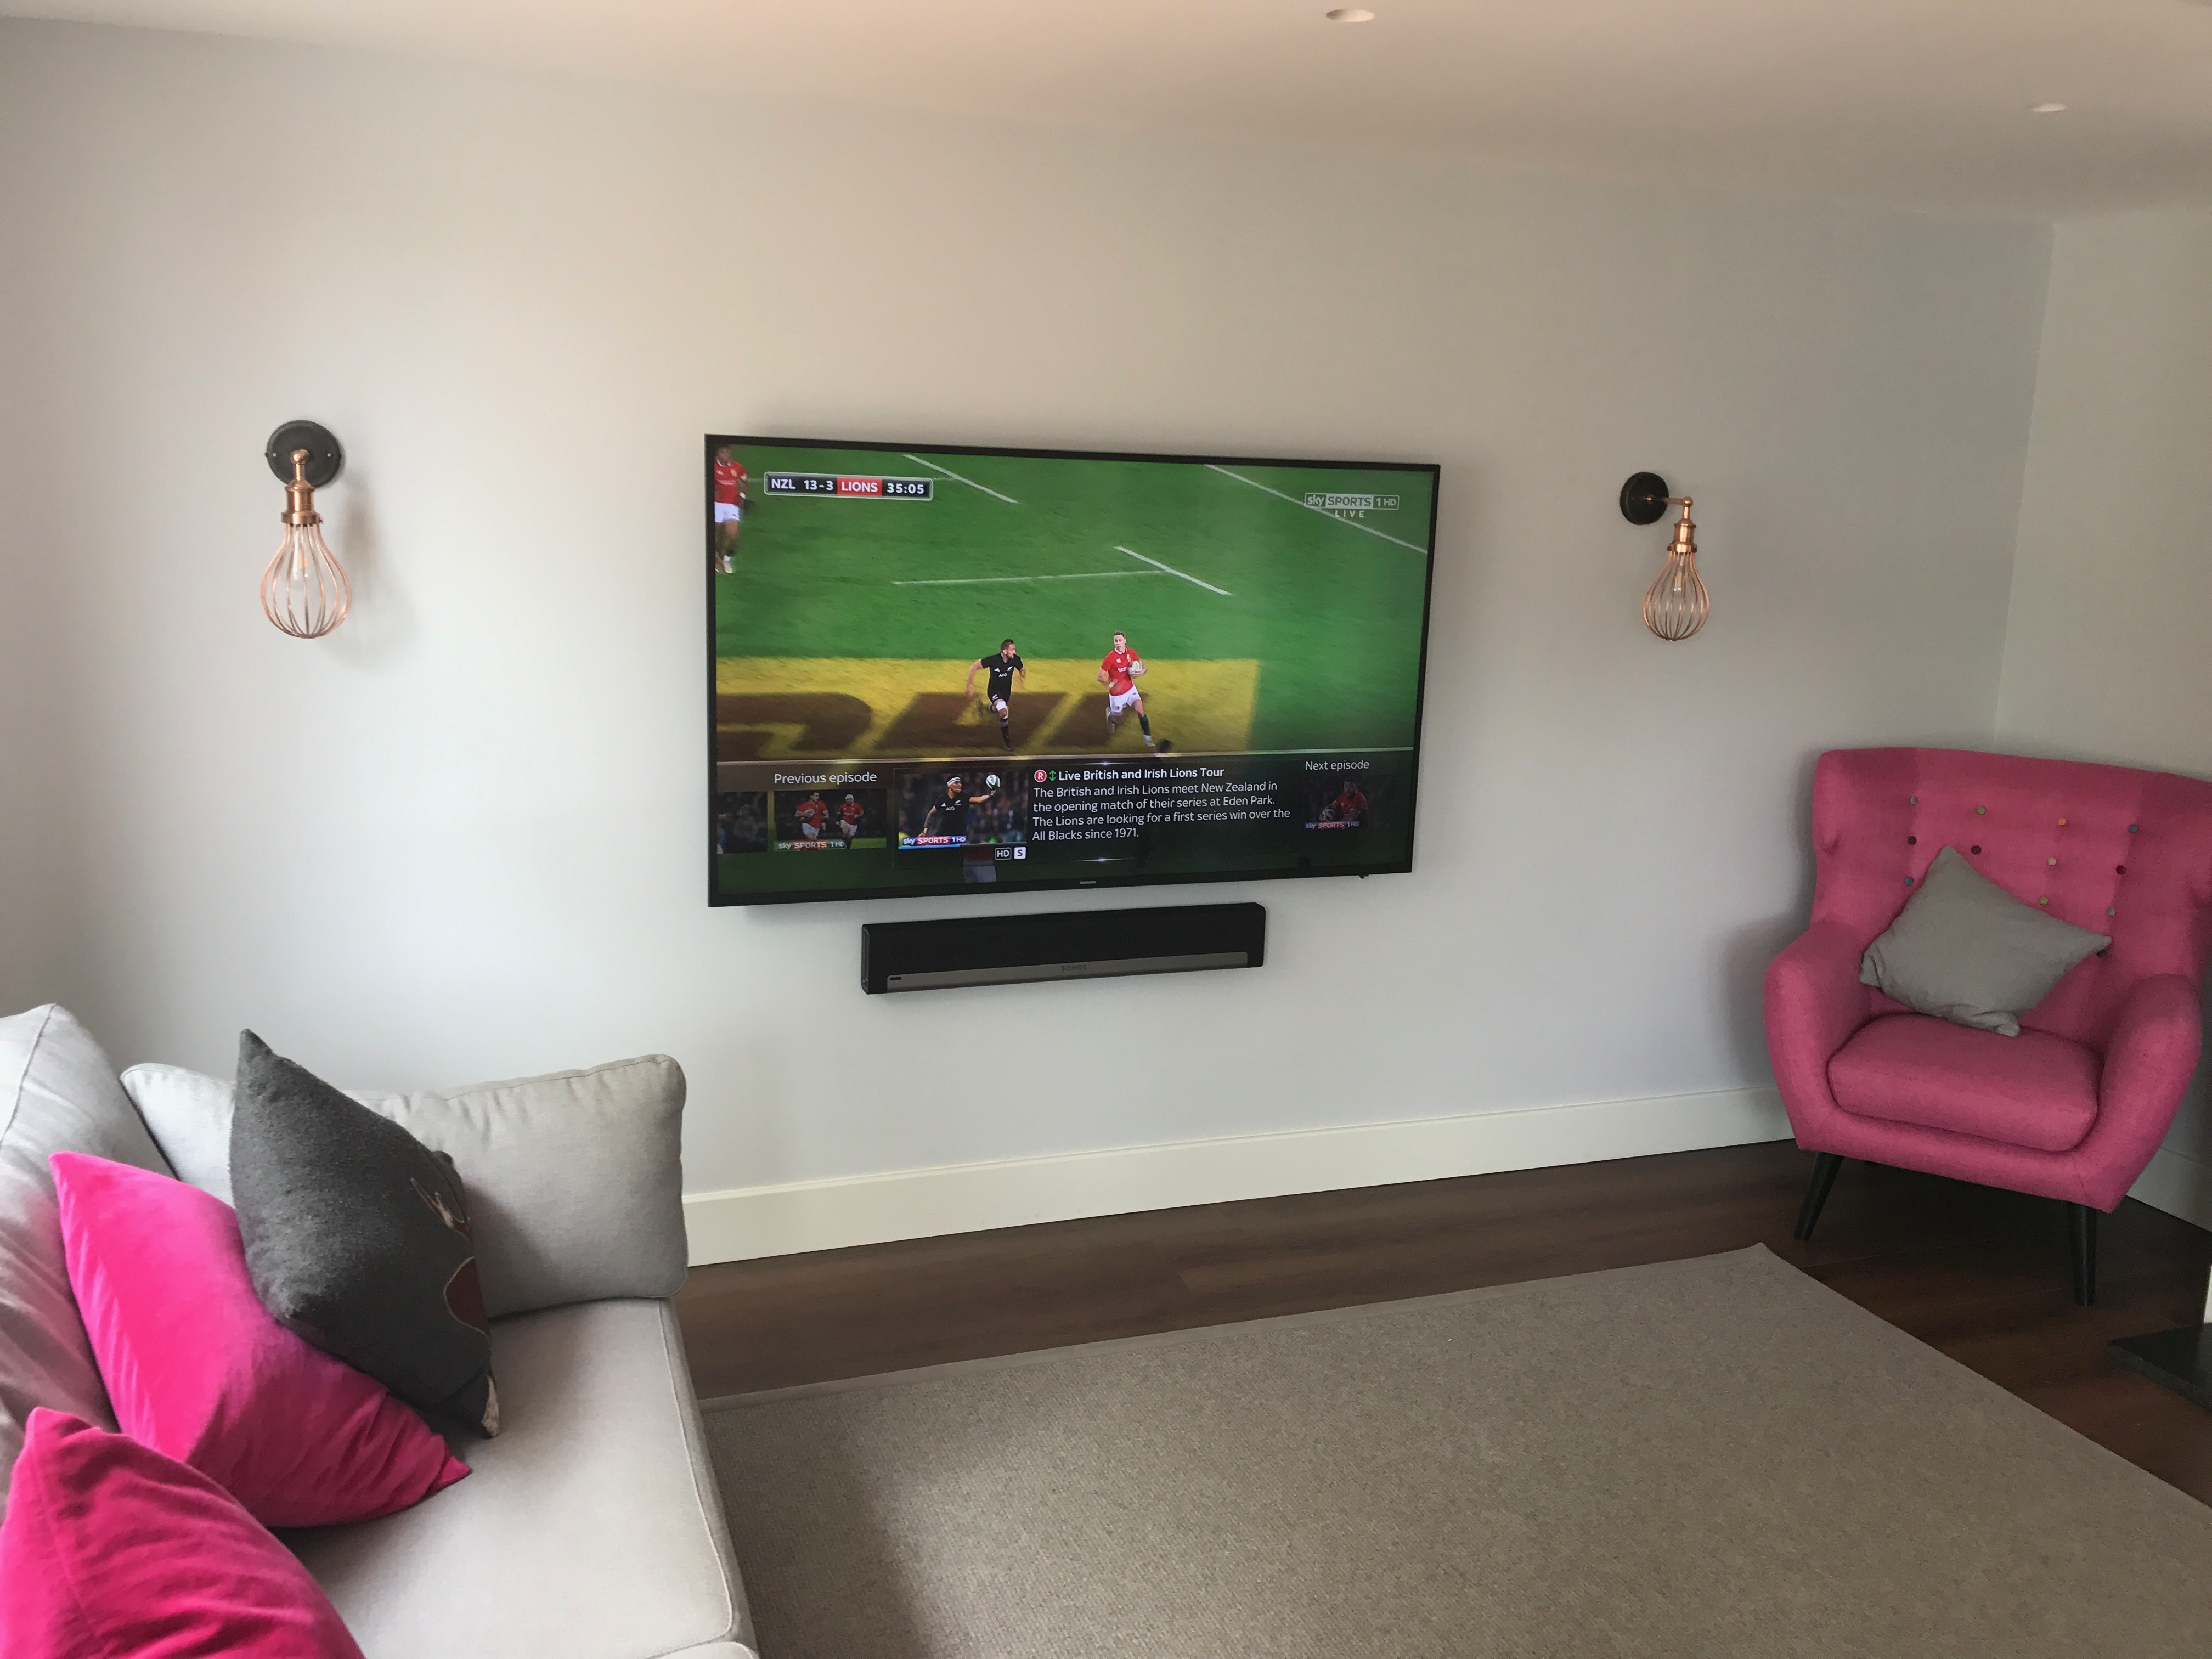 home cinema, home theatre, installation, flat screen wall hanging, aerial, satellite dish, receiver, TV antenna, installation, repair, maintenance, servicing, installer, professional, expert, local, southern, south east, England,